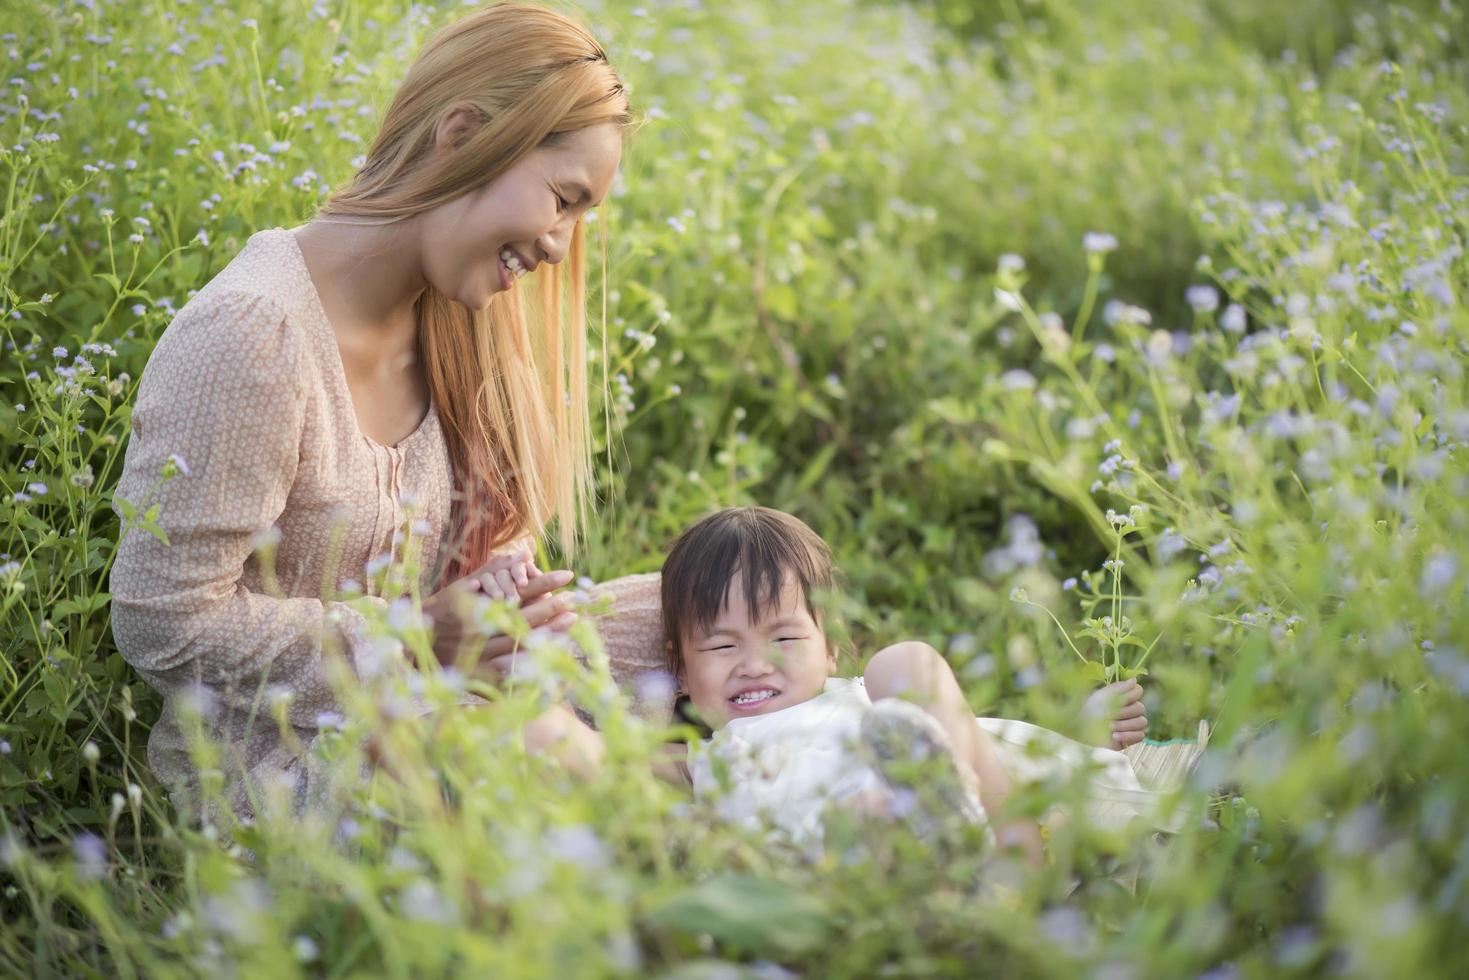 Mother and little daughter playing together in a grassy meadow photo